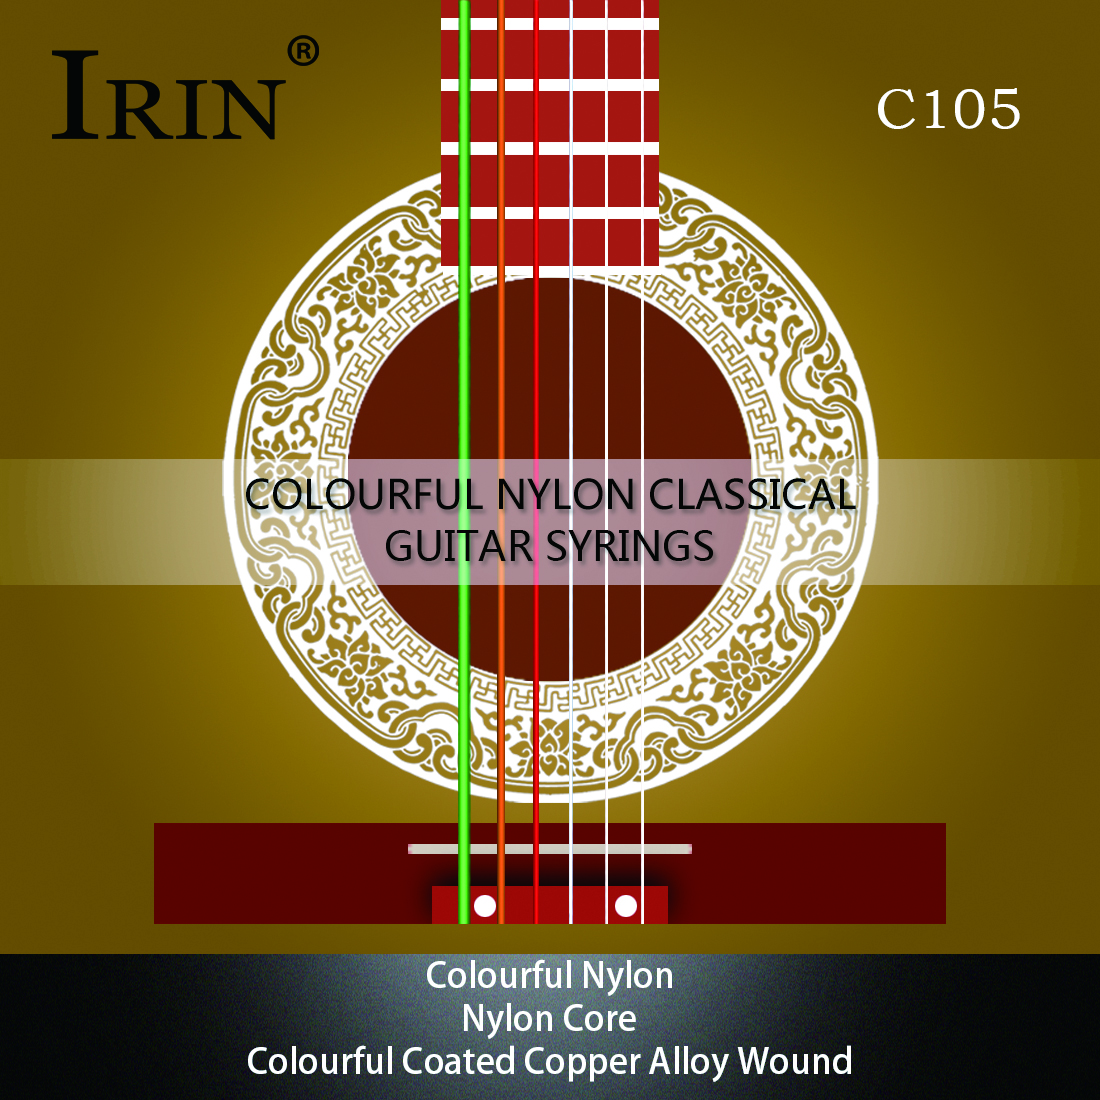 IRIN 6pcs/set (.028-.043) Acoustic Classical Guitar Strings Nylon Core Colorful Coated Copper Alloy Wound C105 Colorful Rainbow